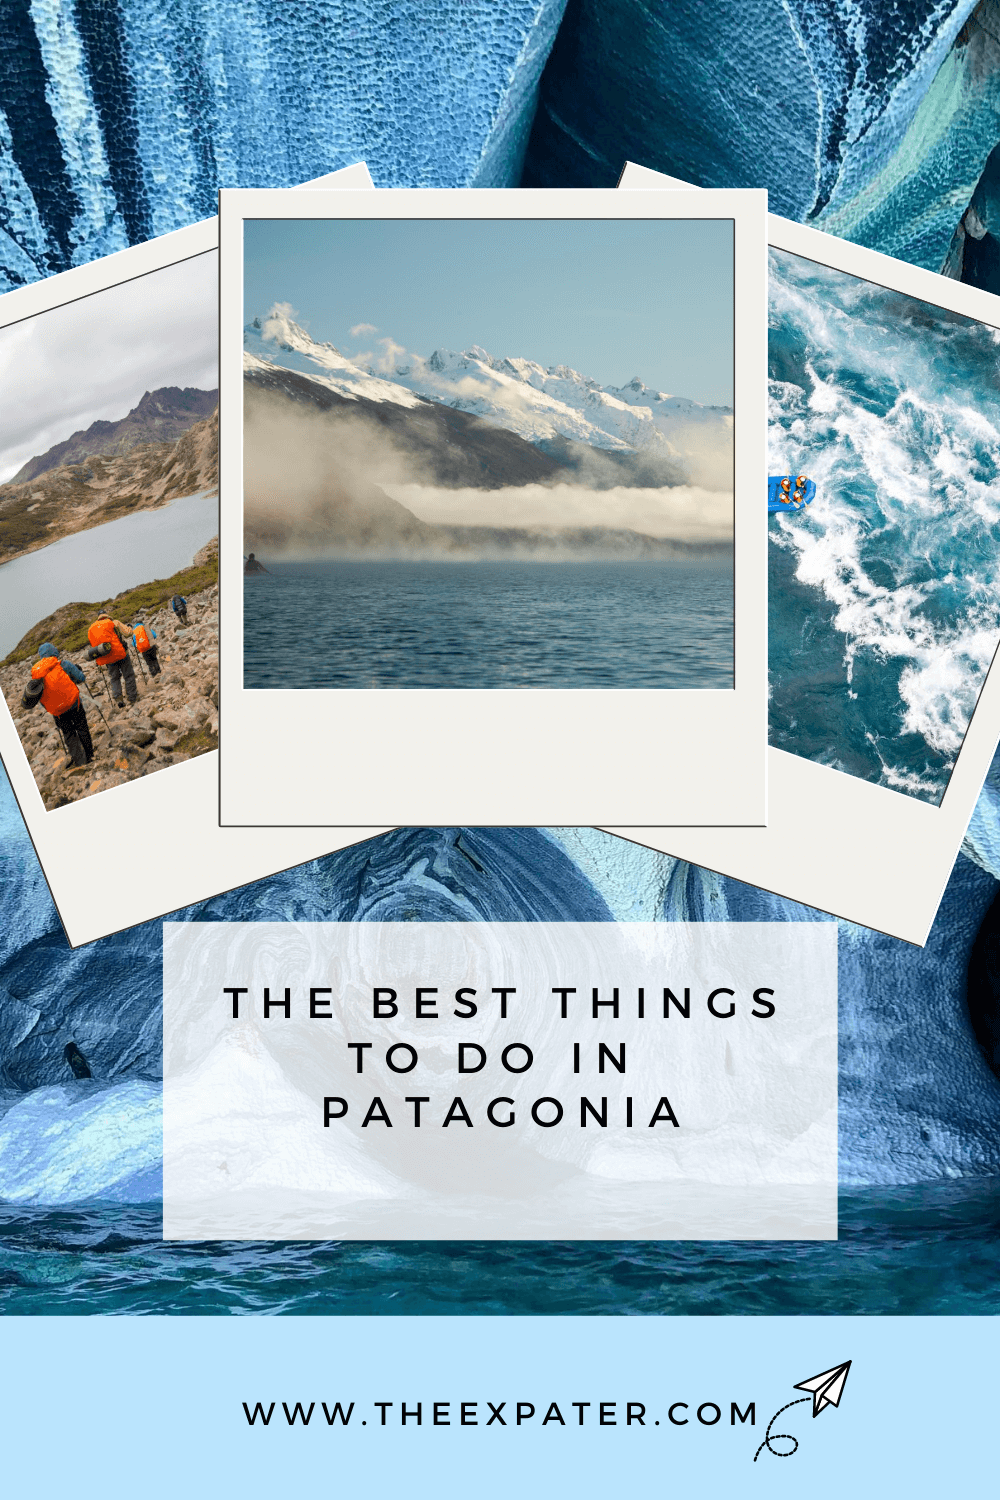 The best things to do in Patagonia